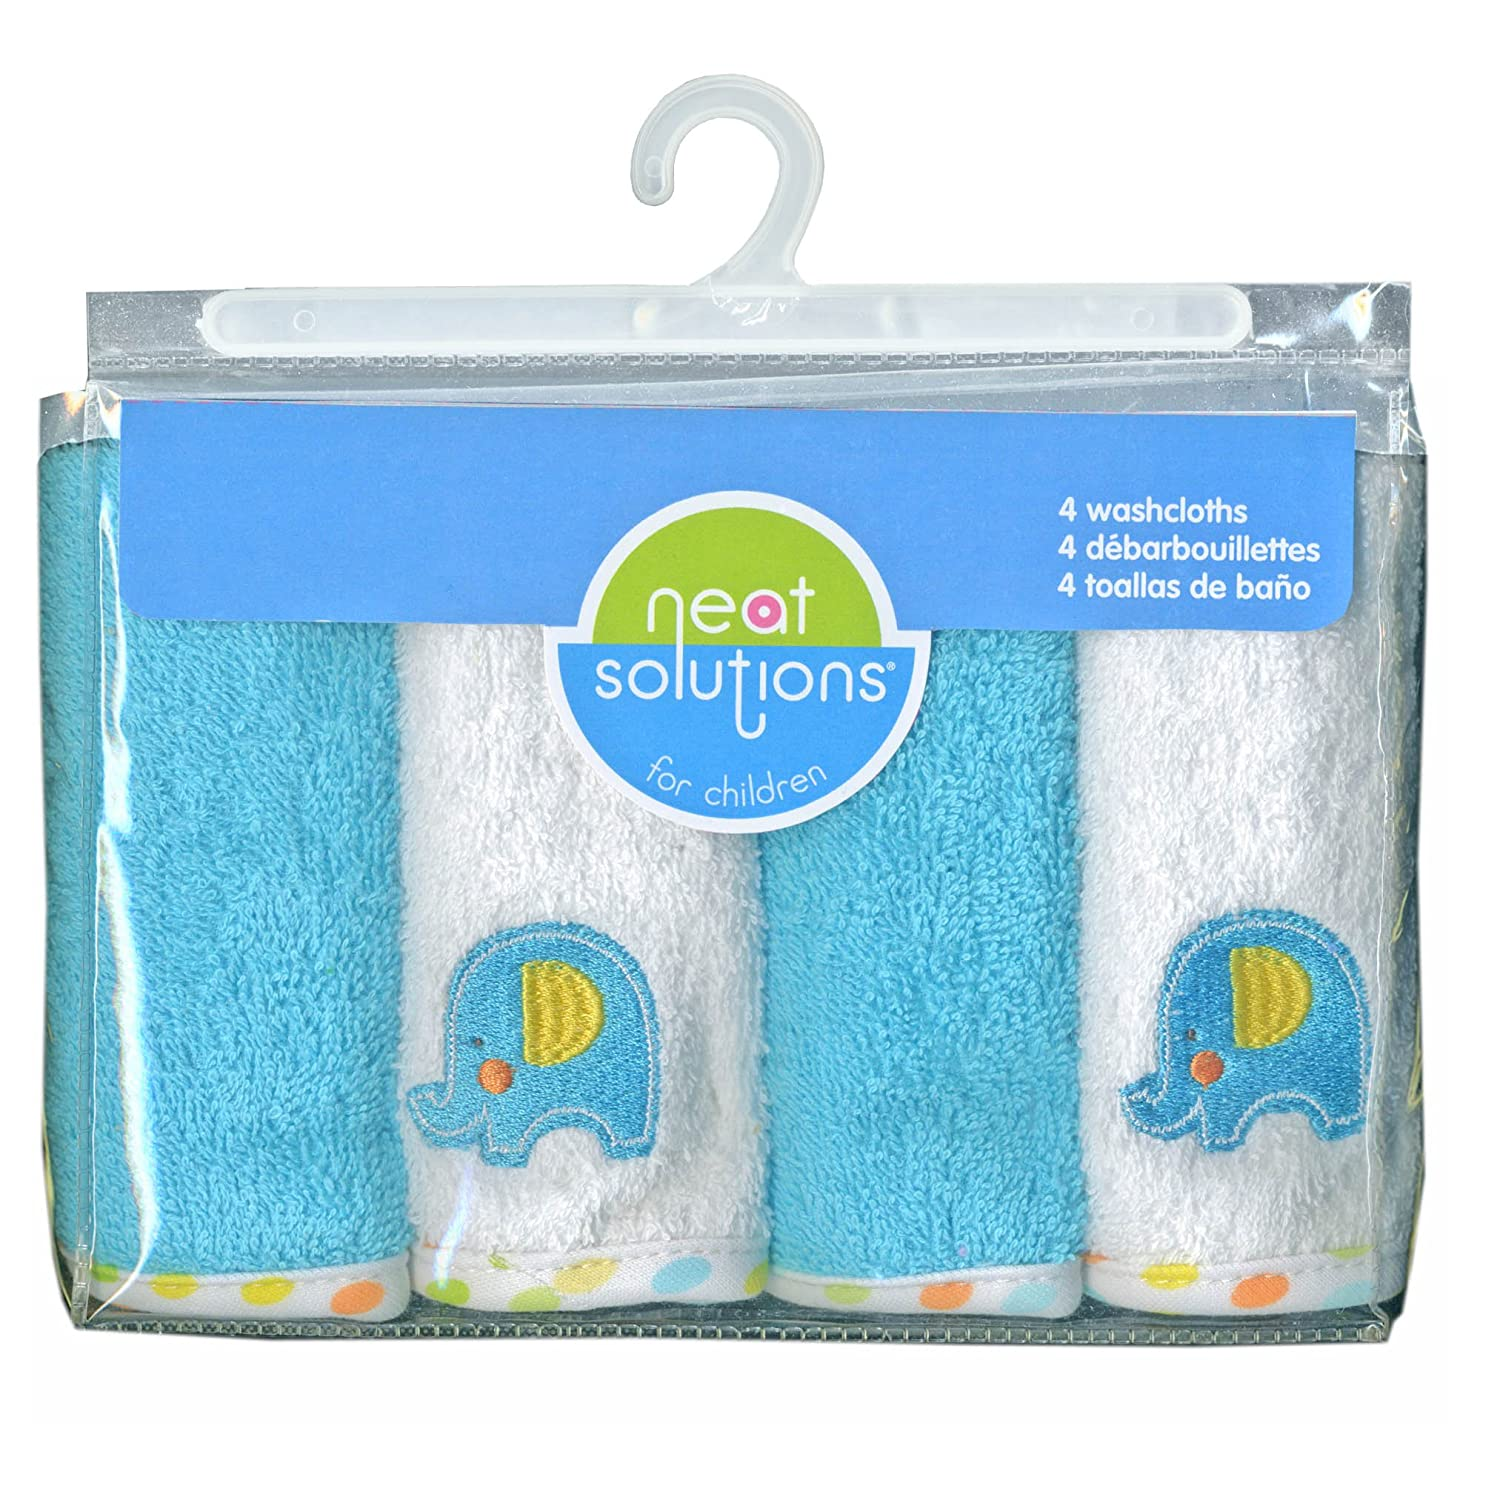 Amazon.com : Neat Solutions Solid Woven Terry Washcloth Set, Teal Elephant, 4-Count : Baby Washcloths : Baby